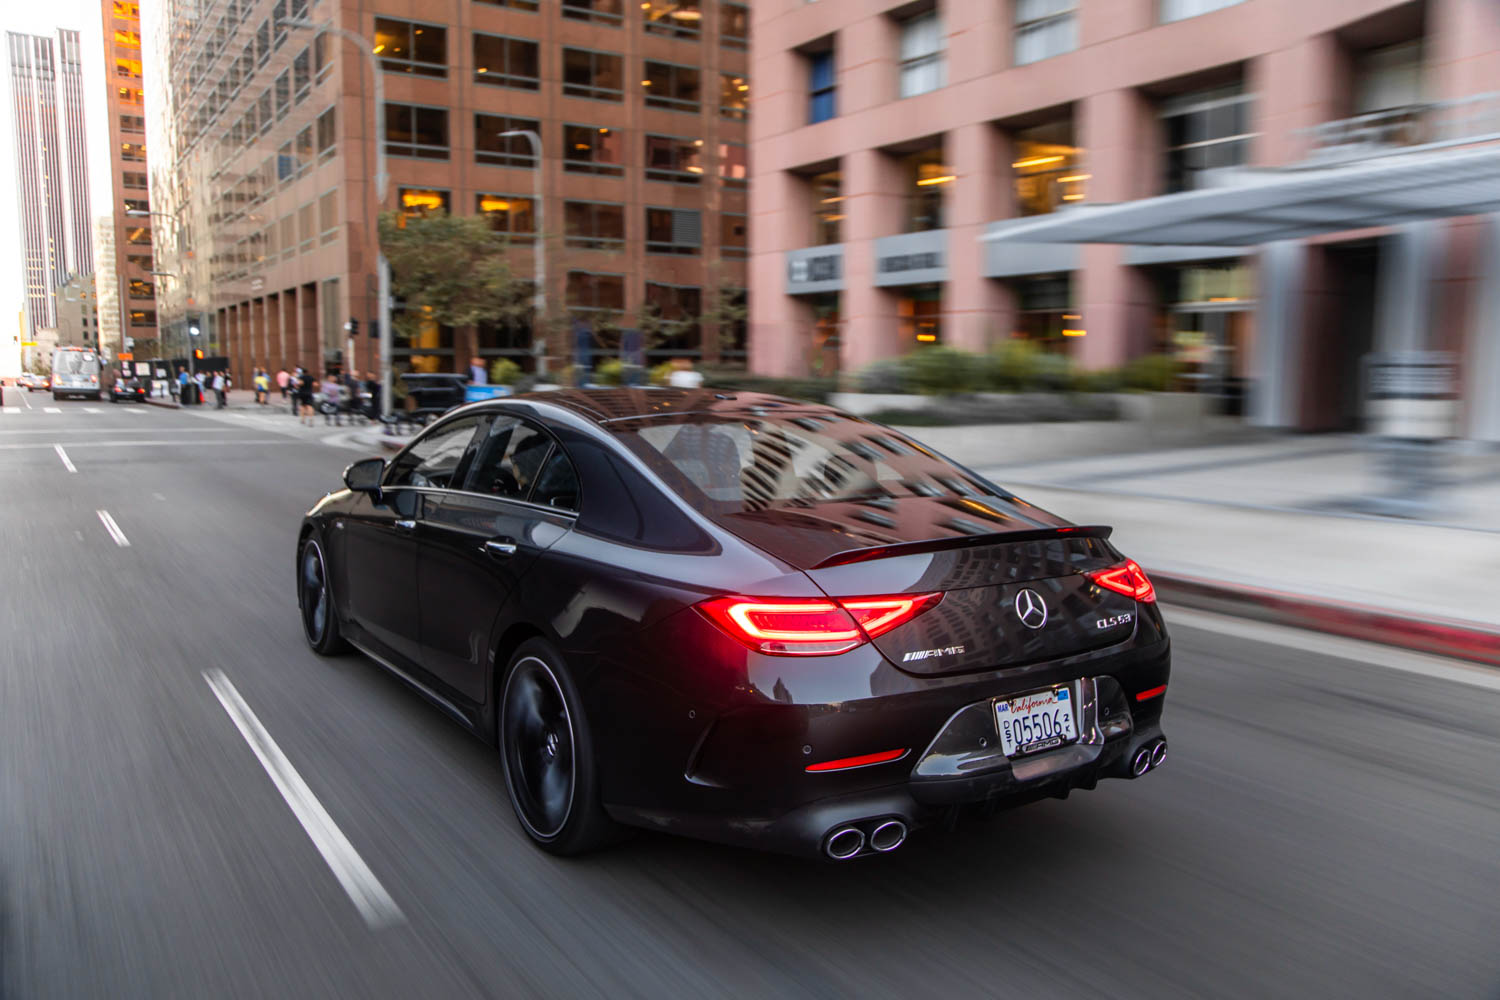 2019 Mercedes-AMG CLS53 rear 3/4 driving